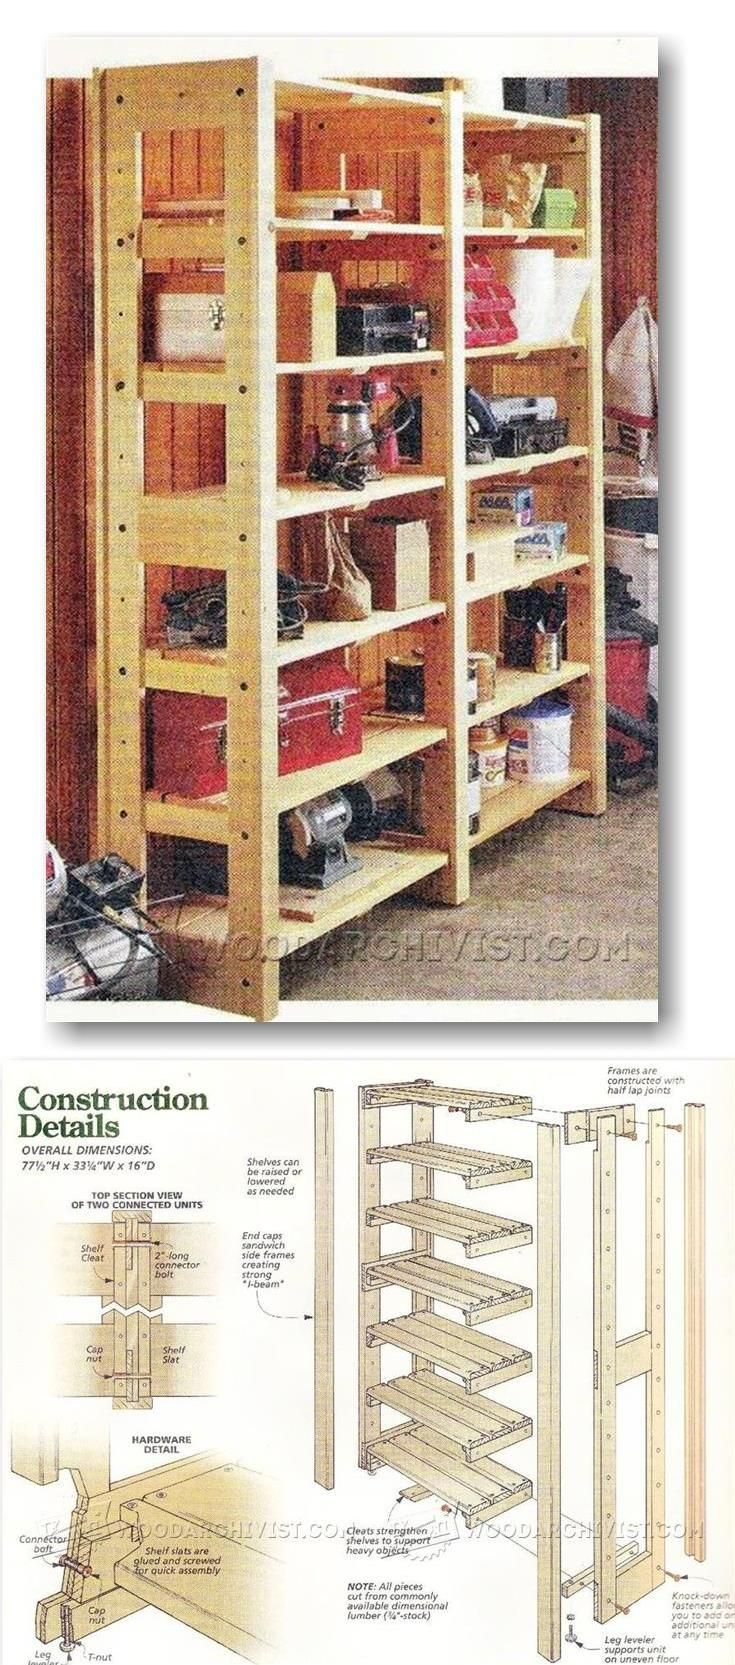 Modular Storage Shelving Plans   Workshop Solutions Projects, Tips And  Tricks | WoodArchivist.com